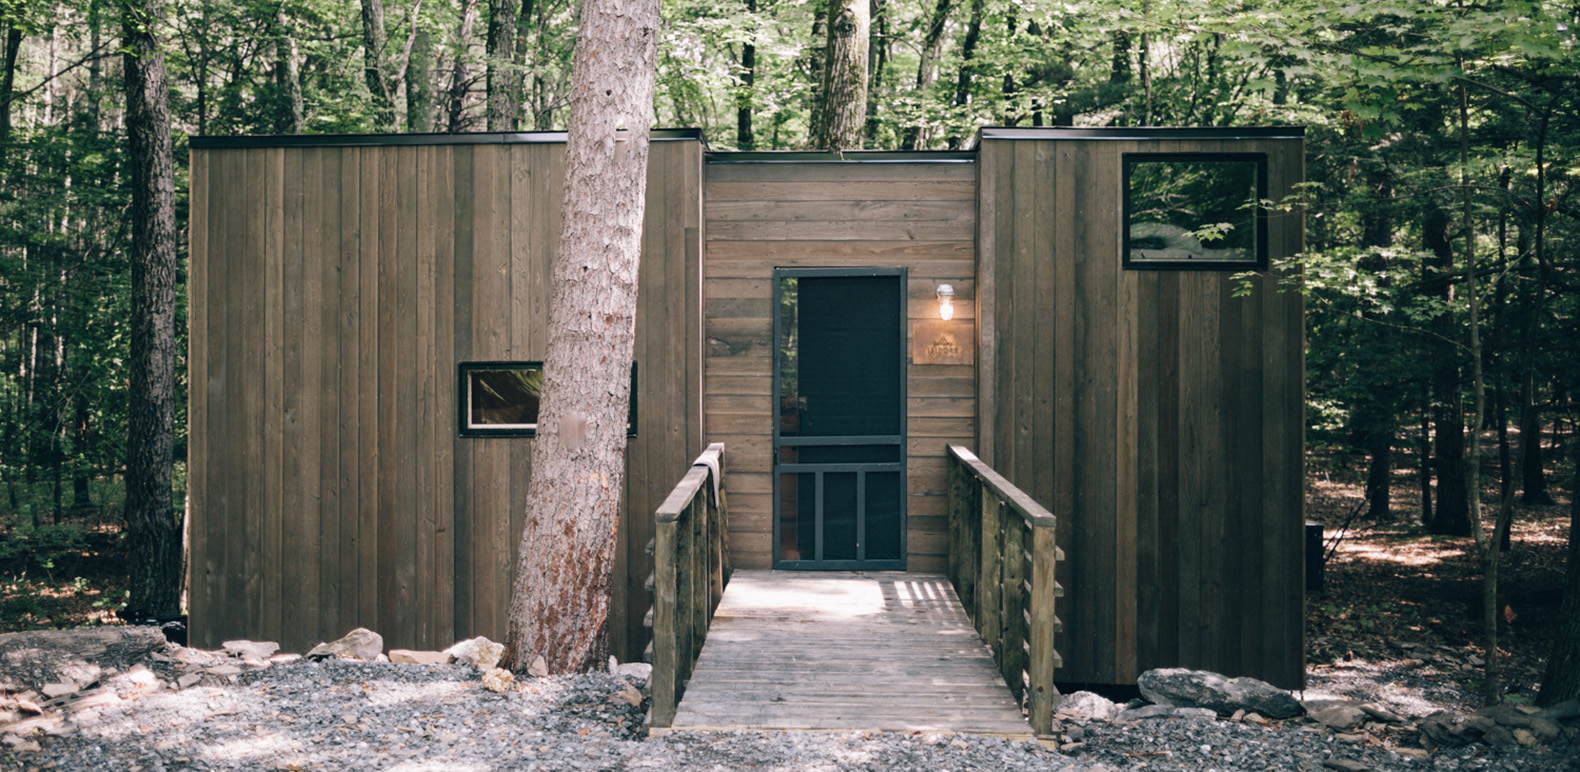 Tiny Home Designs: Getaway Is Launching New Tiny House Rentals In Washington